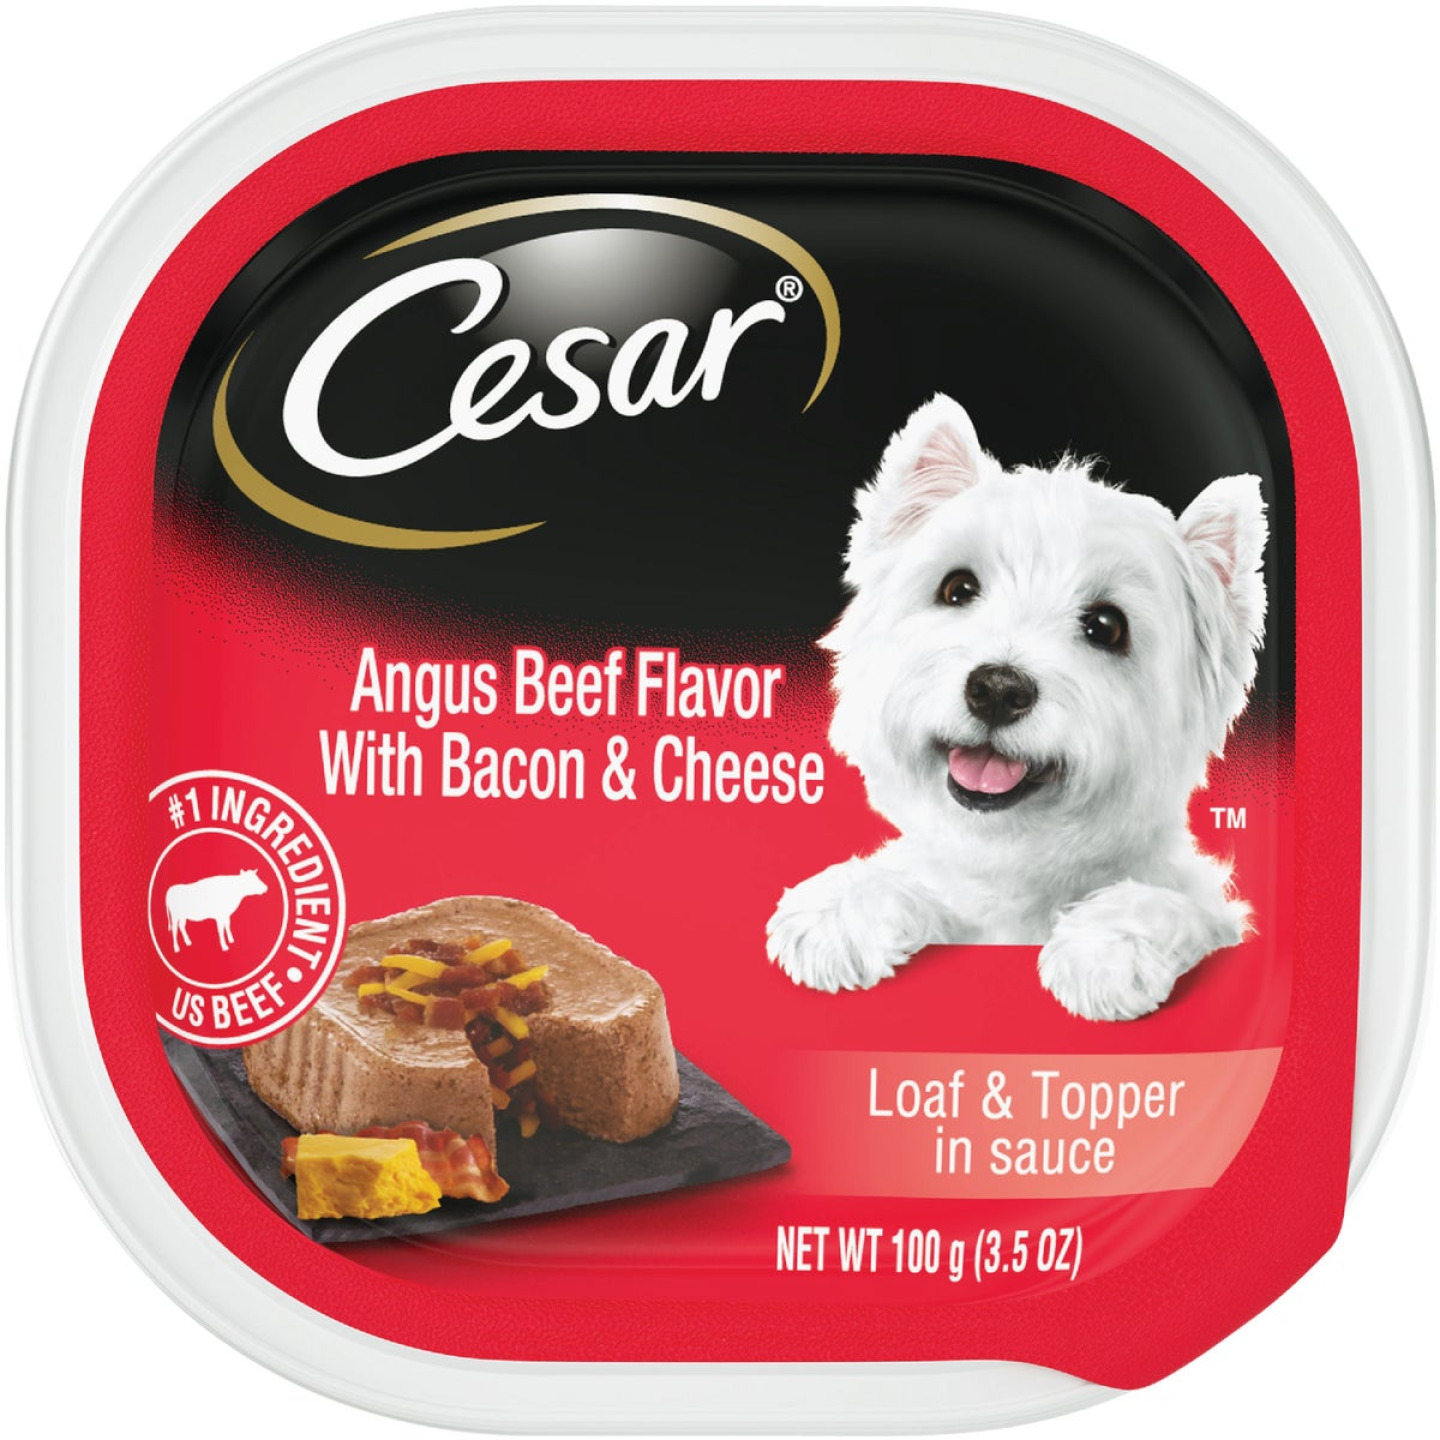 Cesar Loaf & Topper Angus Beef with Bacon & Cheese Adult Wet Dog Food, 3.5 Oz. Image 1